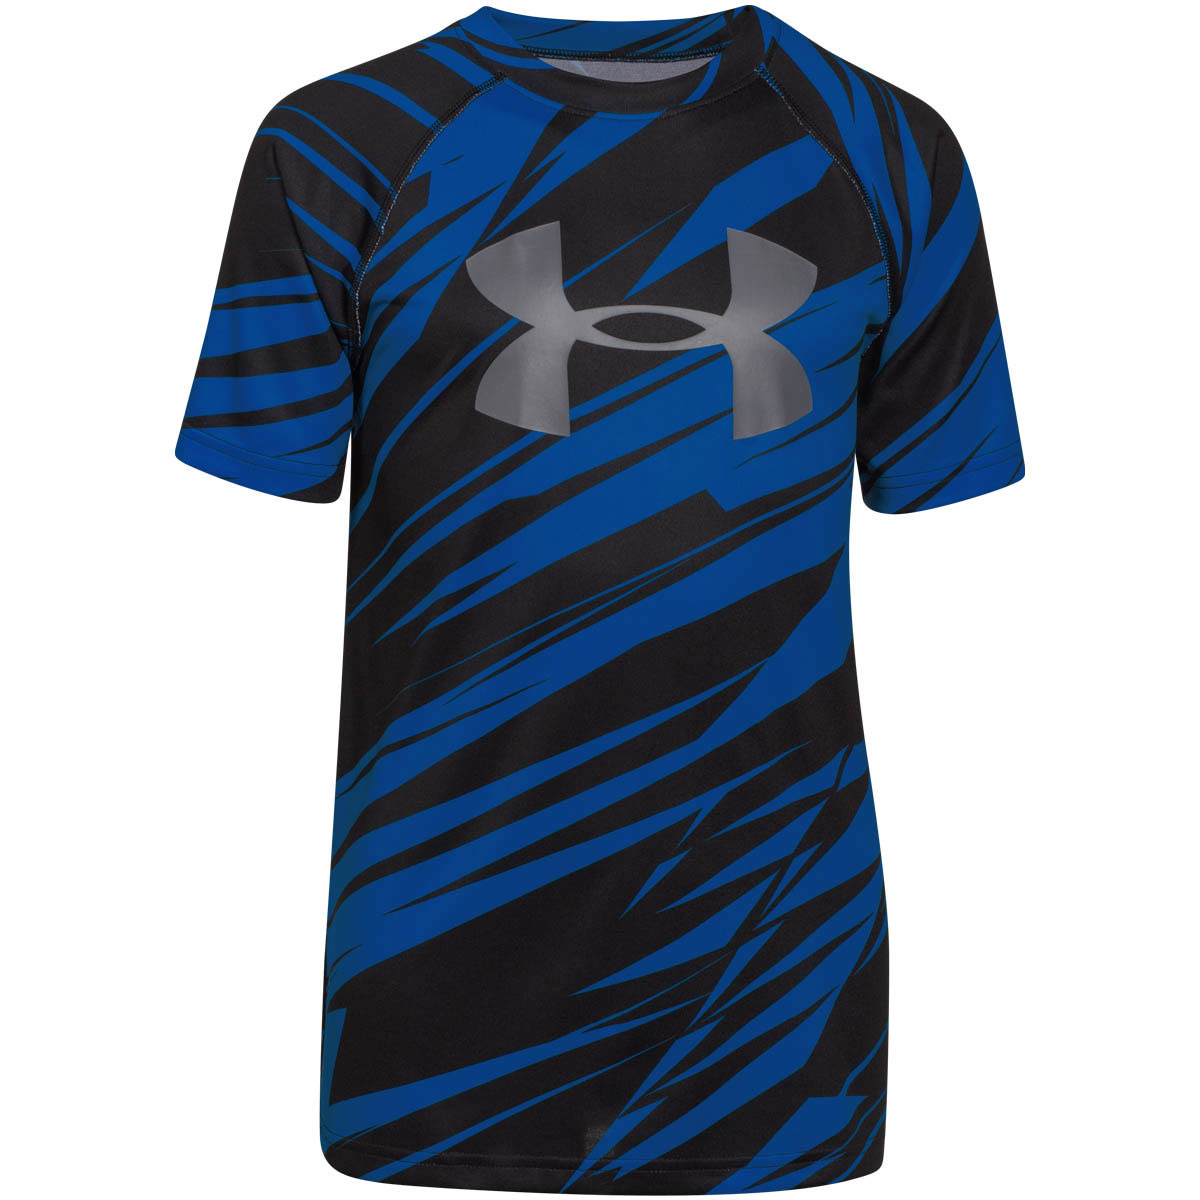 Under armour 2015 boys ua tech big logo printed t shirt for Under armour swim shirt youth